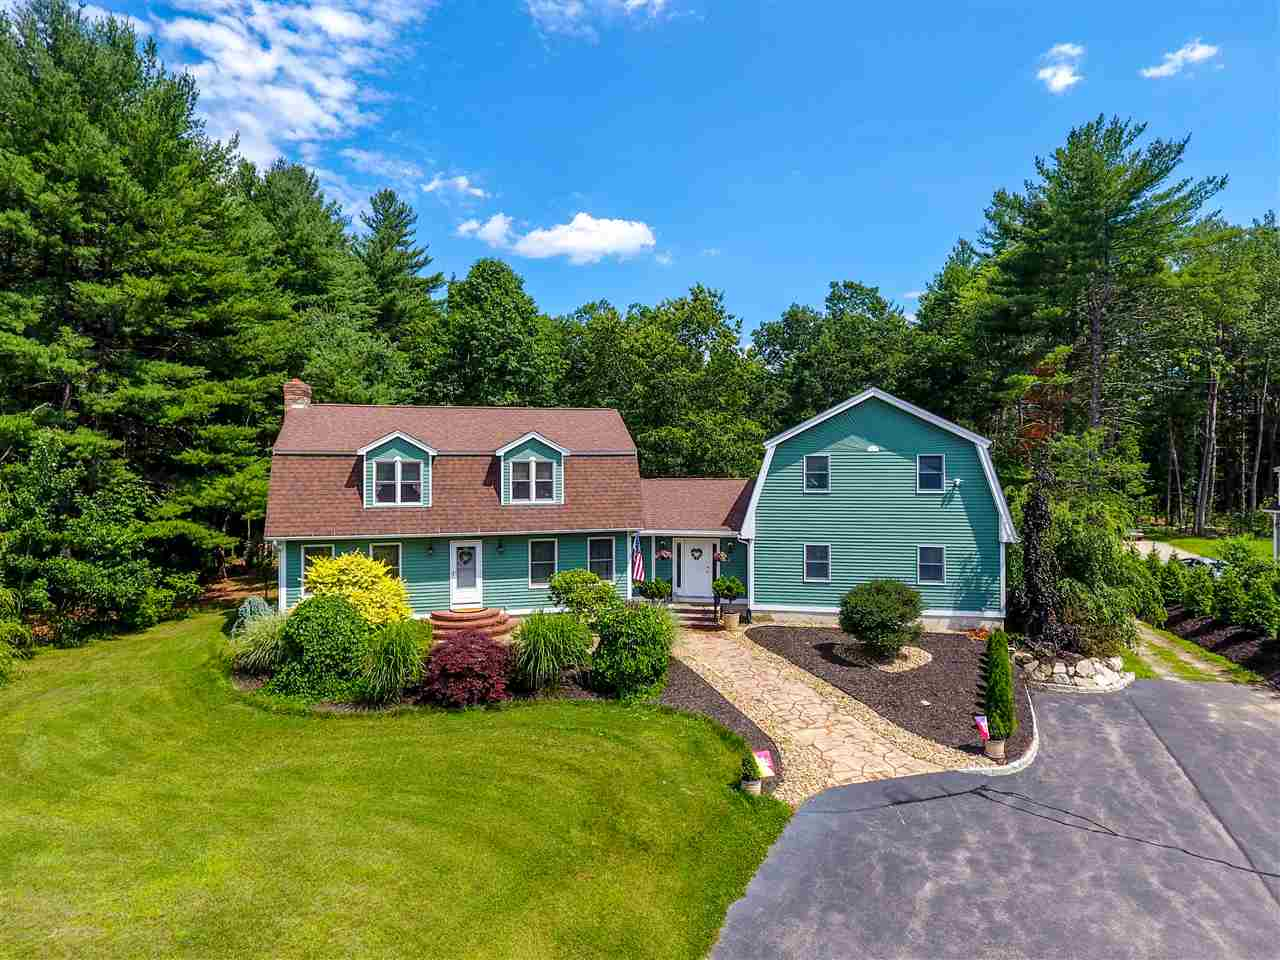 125 Lowell Road, Windham, NH 03087